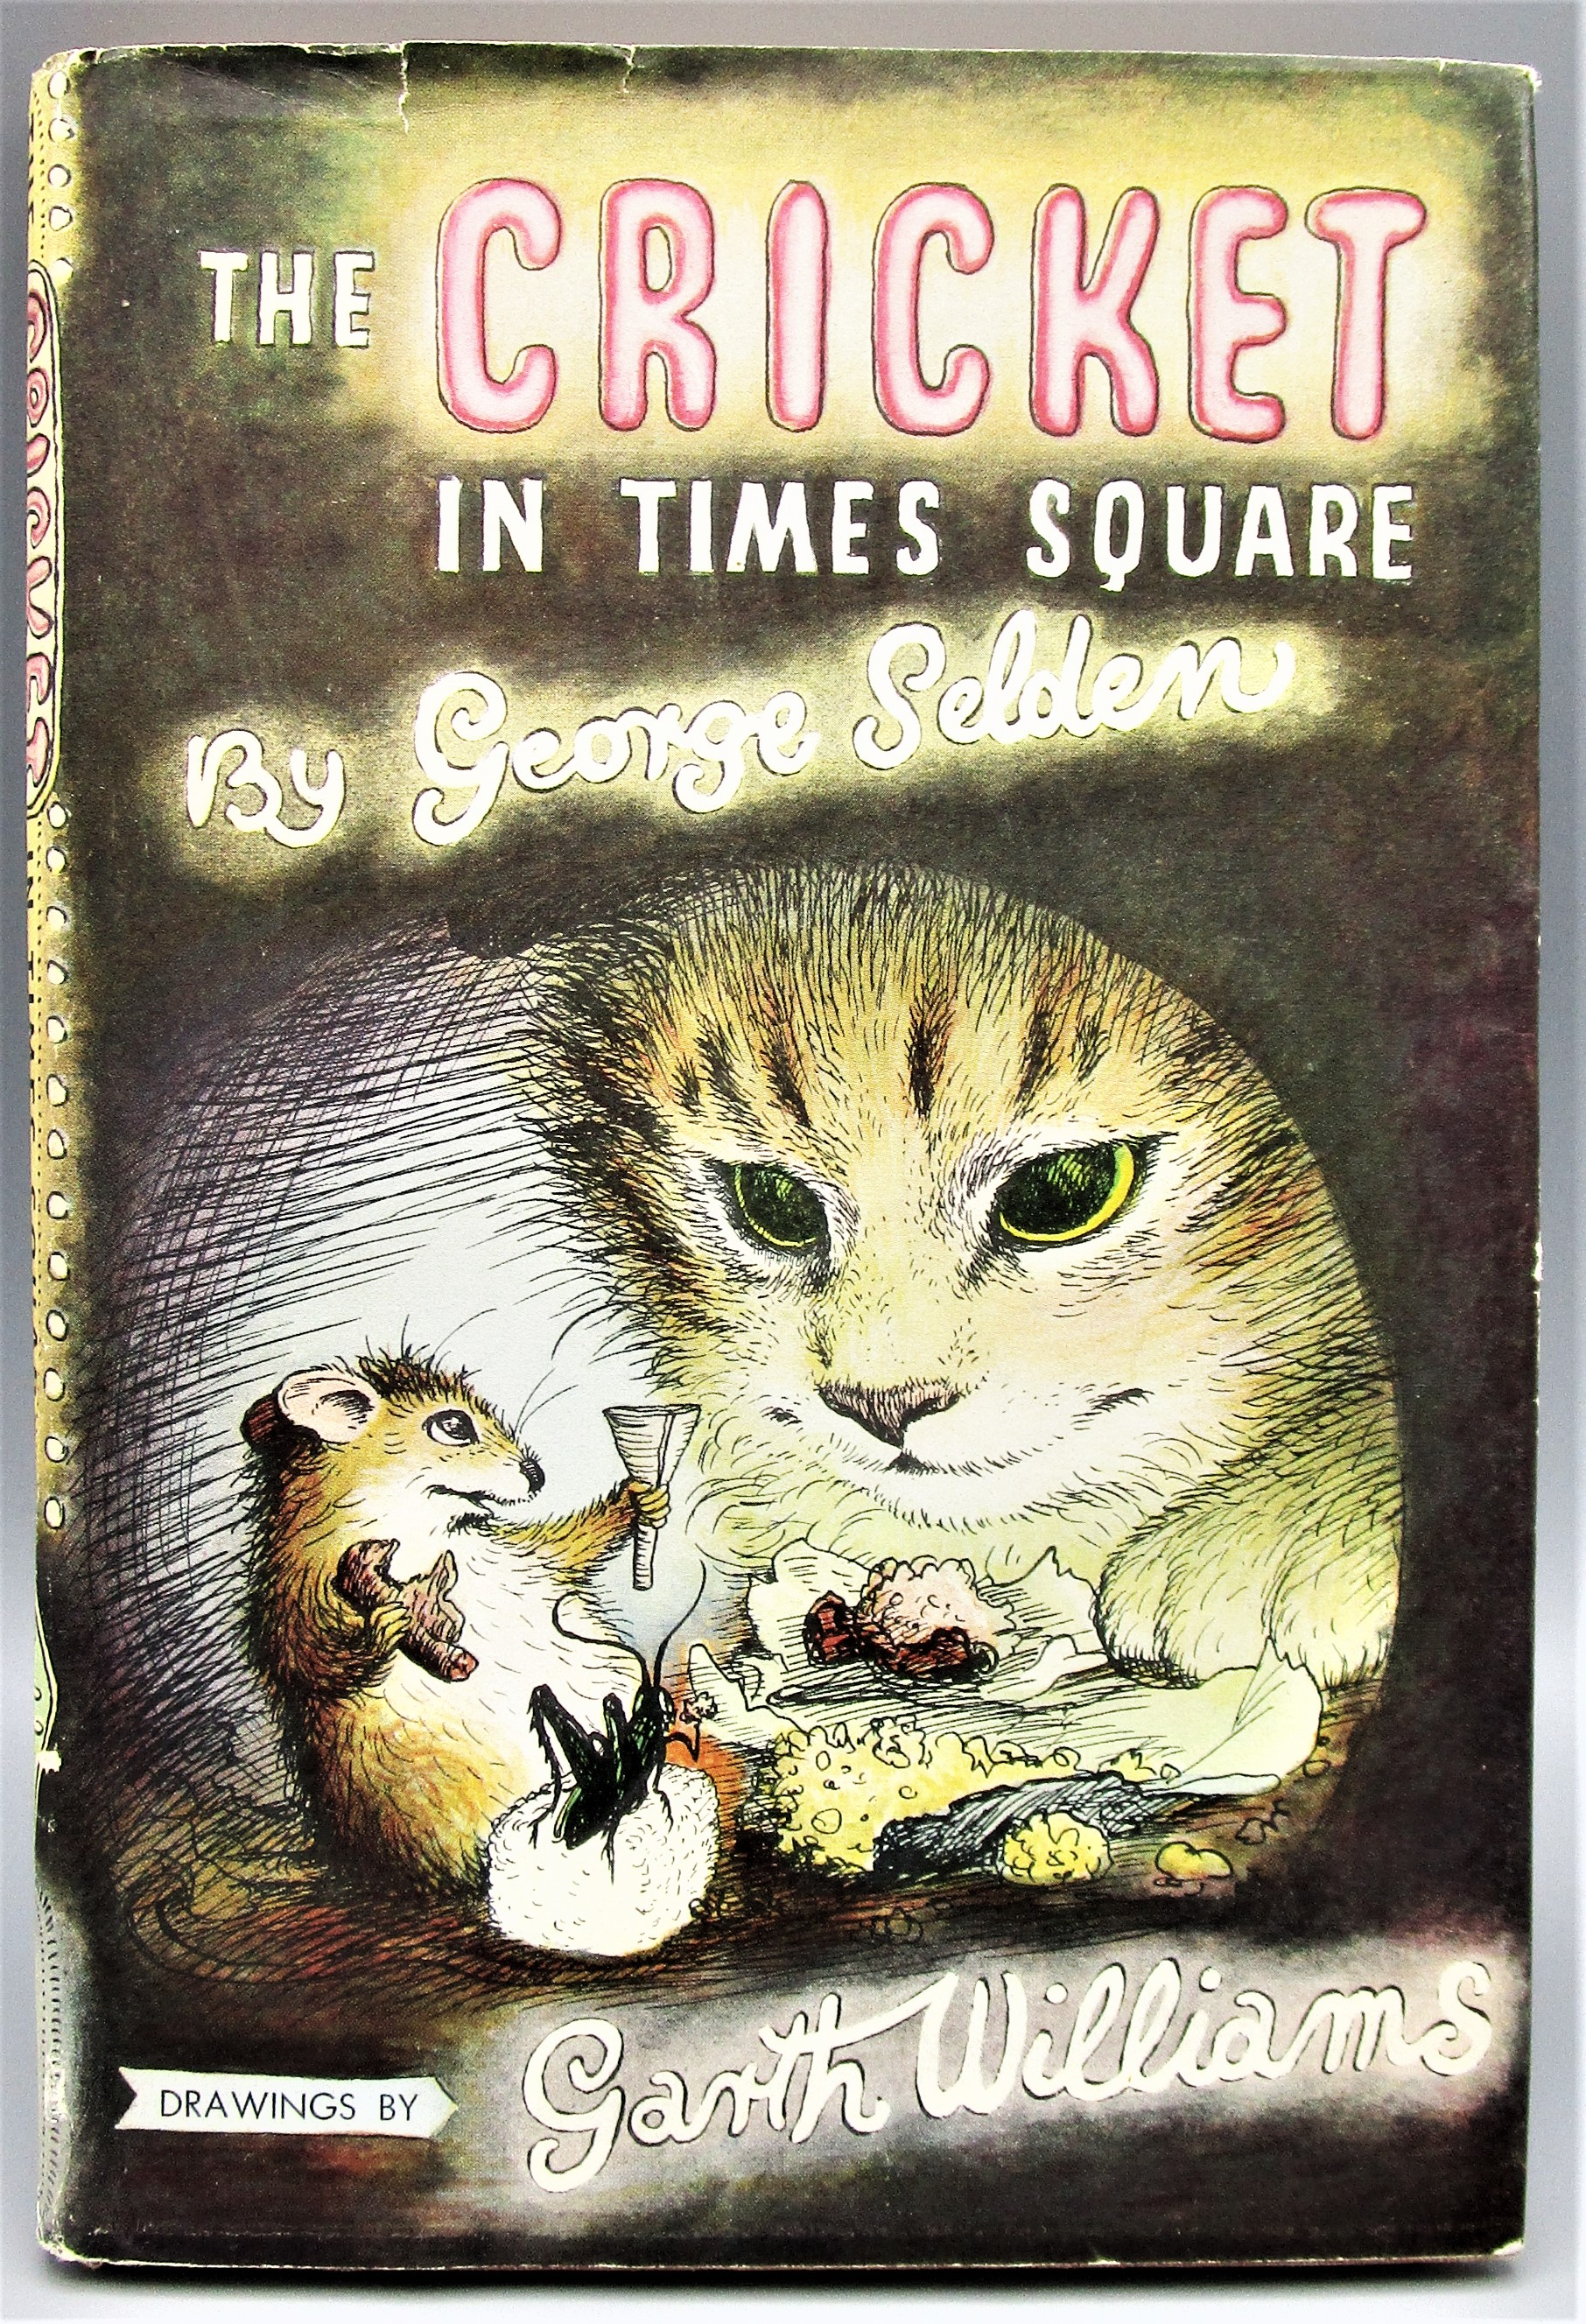 THE CRICKET IN TIMES SQUARE, by George Selden; Garth Williams - 1960 [1st Ed]